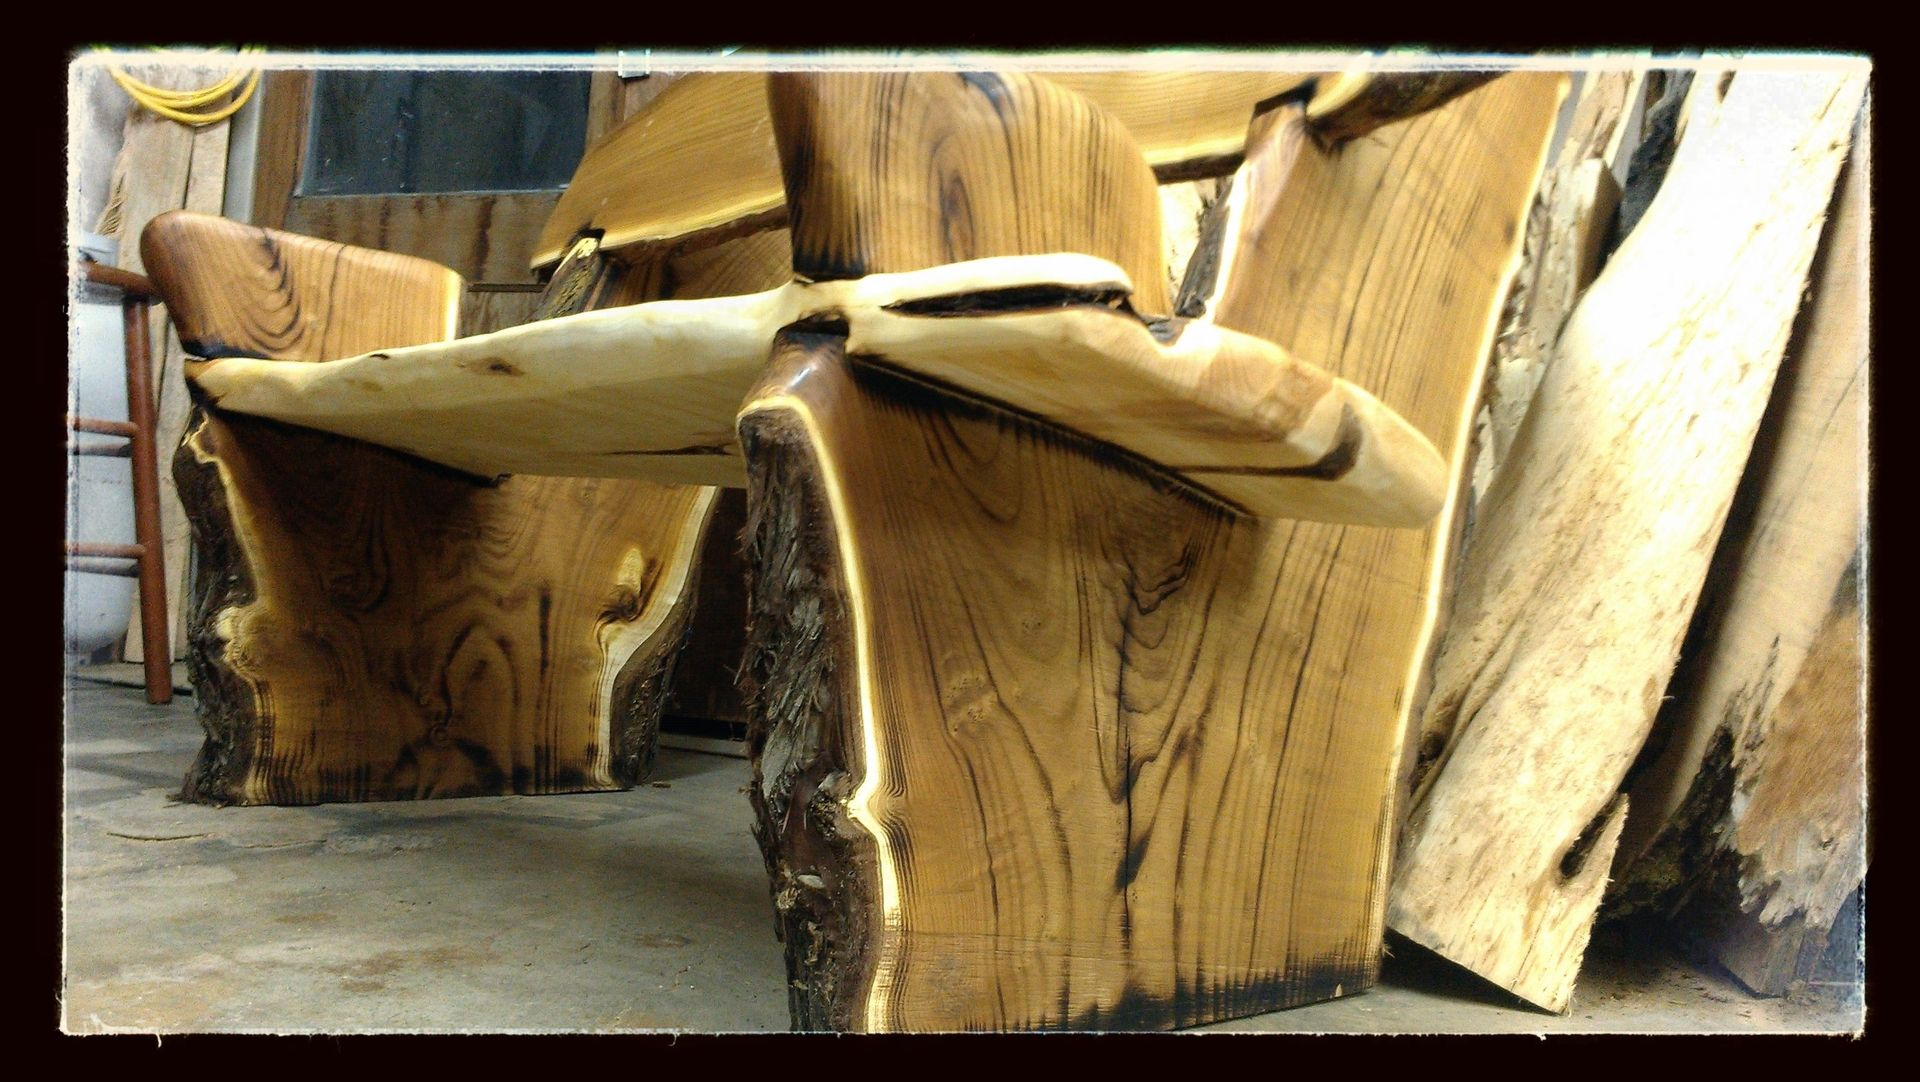 Hand Made Live Edge Rustic Bench Crotch Wood Slabs By Juniper Canyon Design